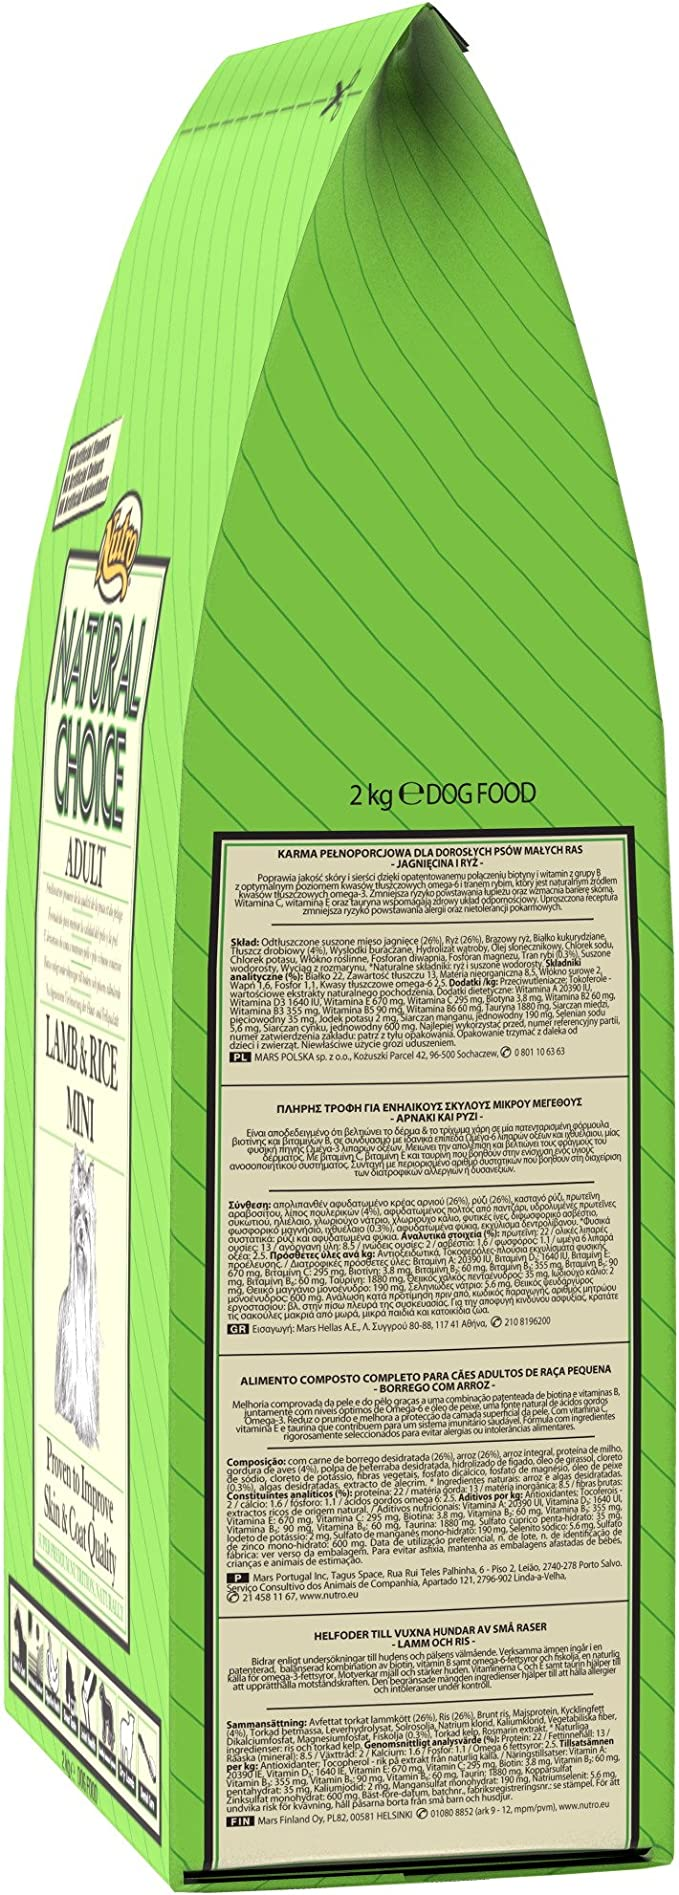 NUTRO natural Choice LAMB & RICE MINI - Comida para perros adultos, cordero y arroz mini 2kg: Amazon.es: Productos para mascotas